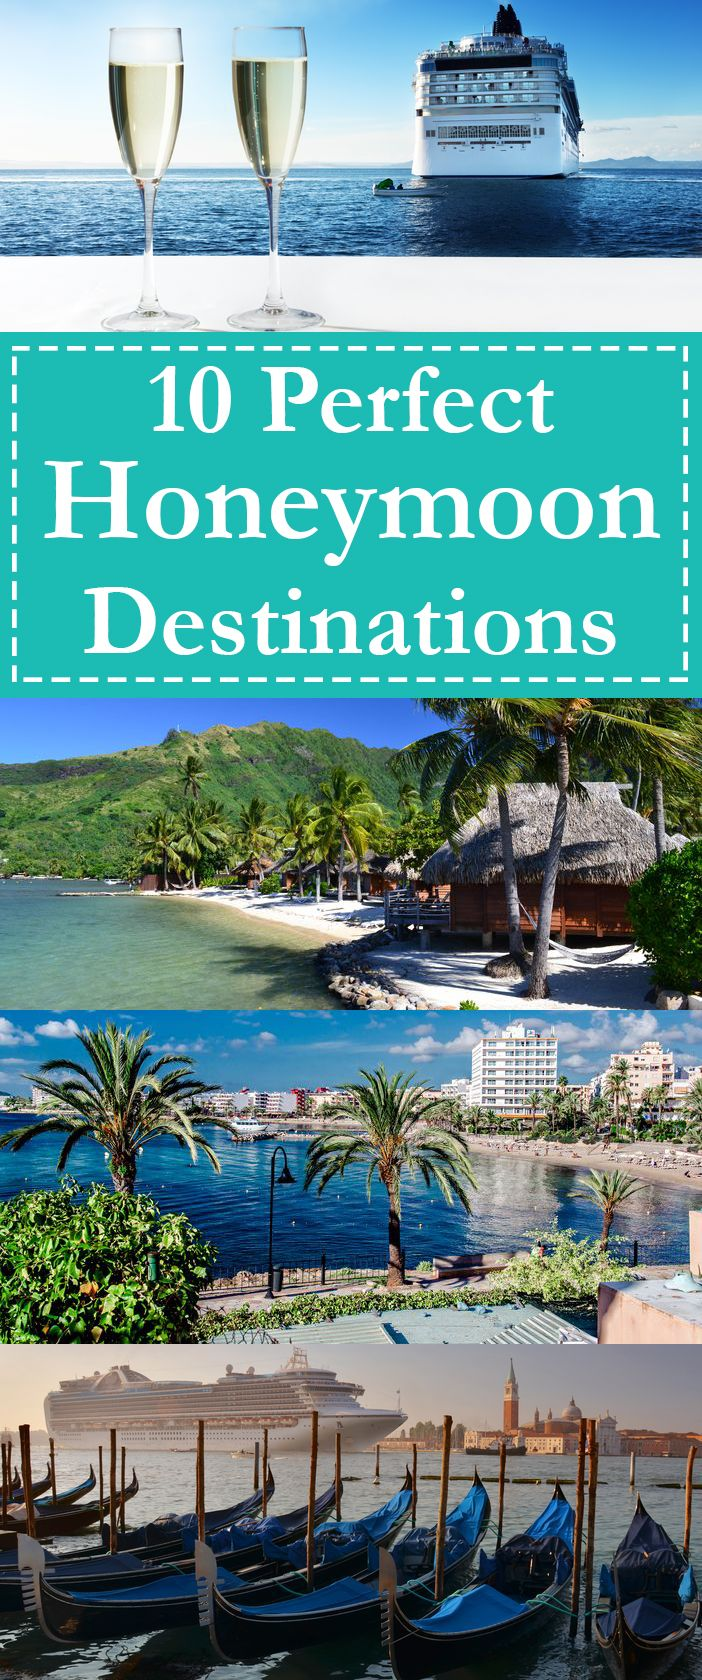 After going through the most important day of your life, it is only fitting that you search for the best honeymoon destination in the world. With this in mind, here are 10 of the most perfect honeymoon destinations around the world.